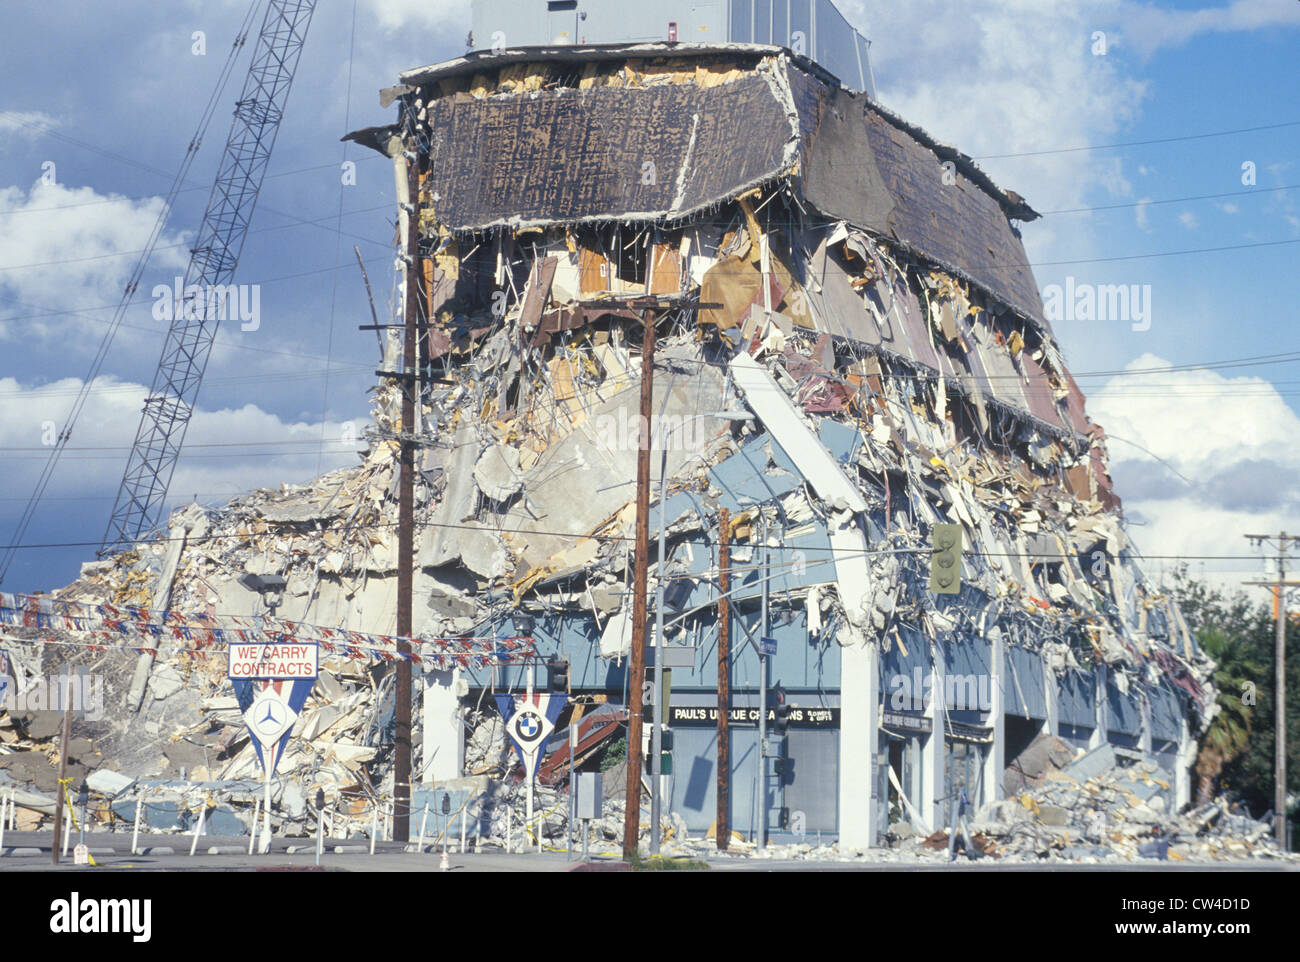 A demolished building at Olympic Blvd after the Northridge earthquake in 1994 - Stock Image